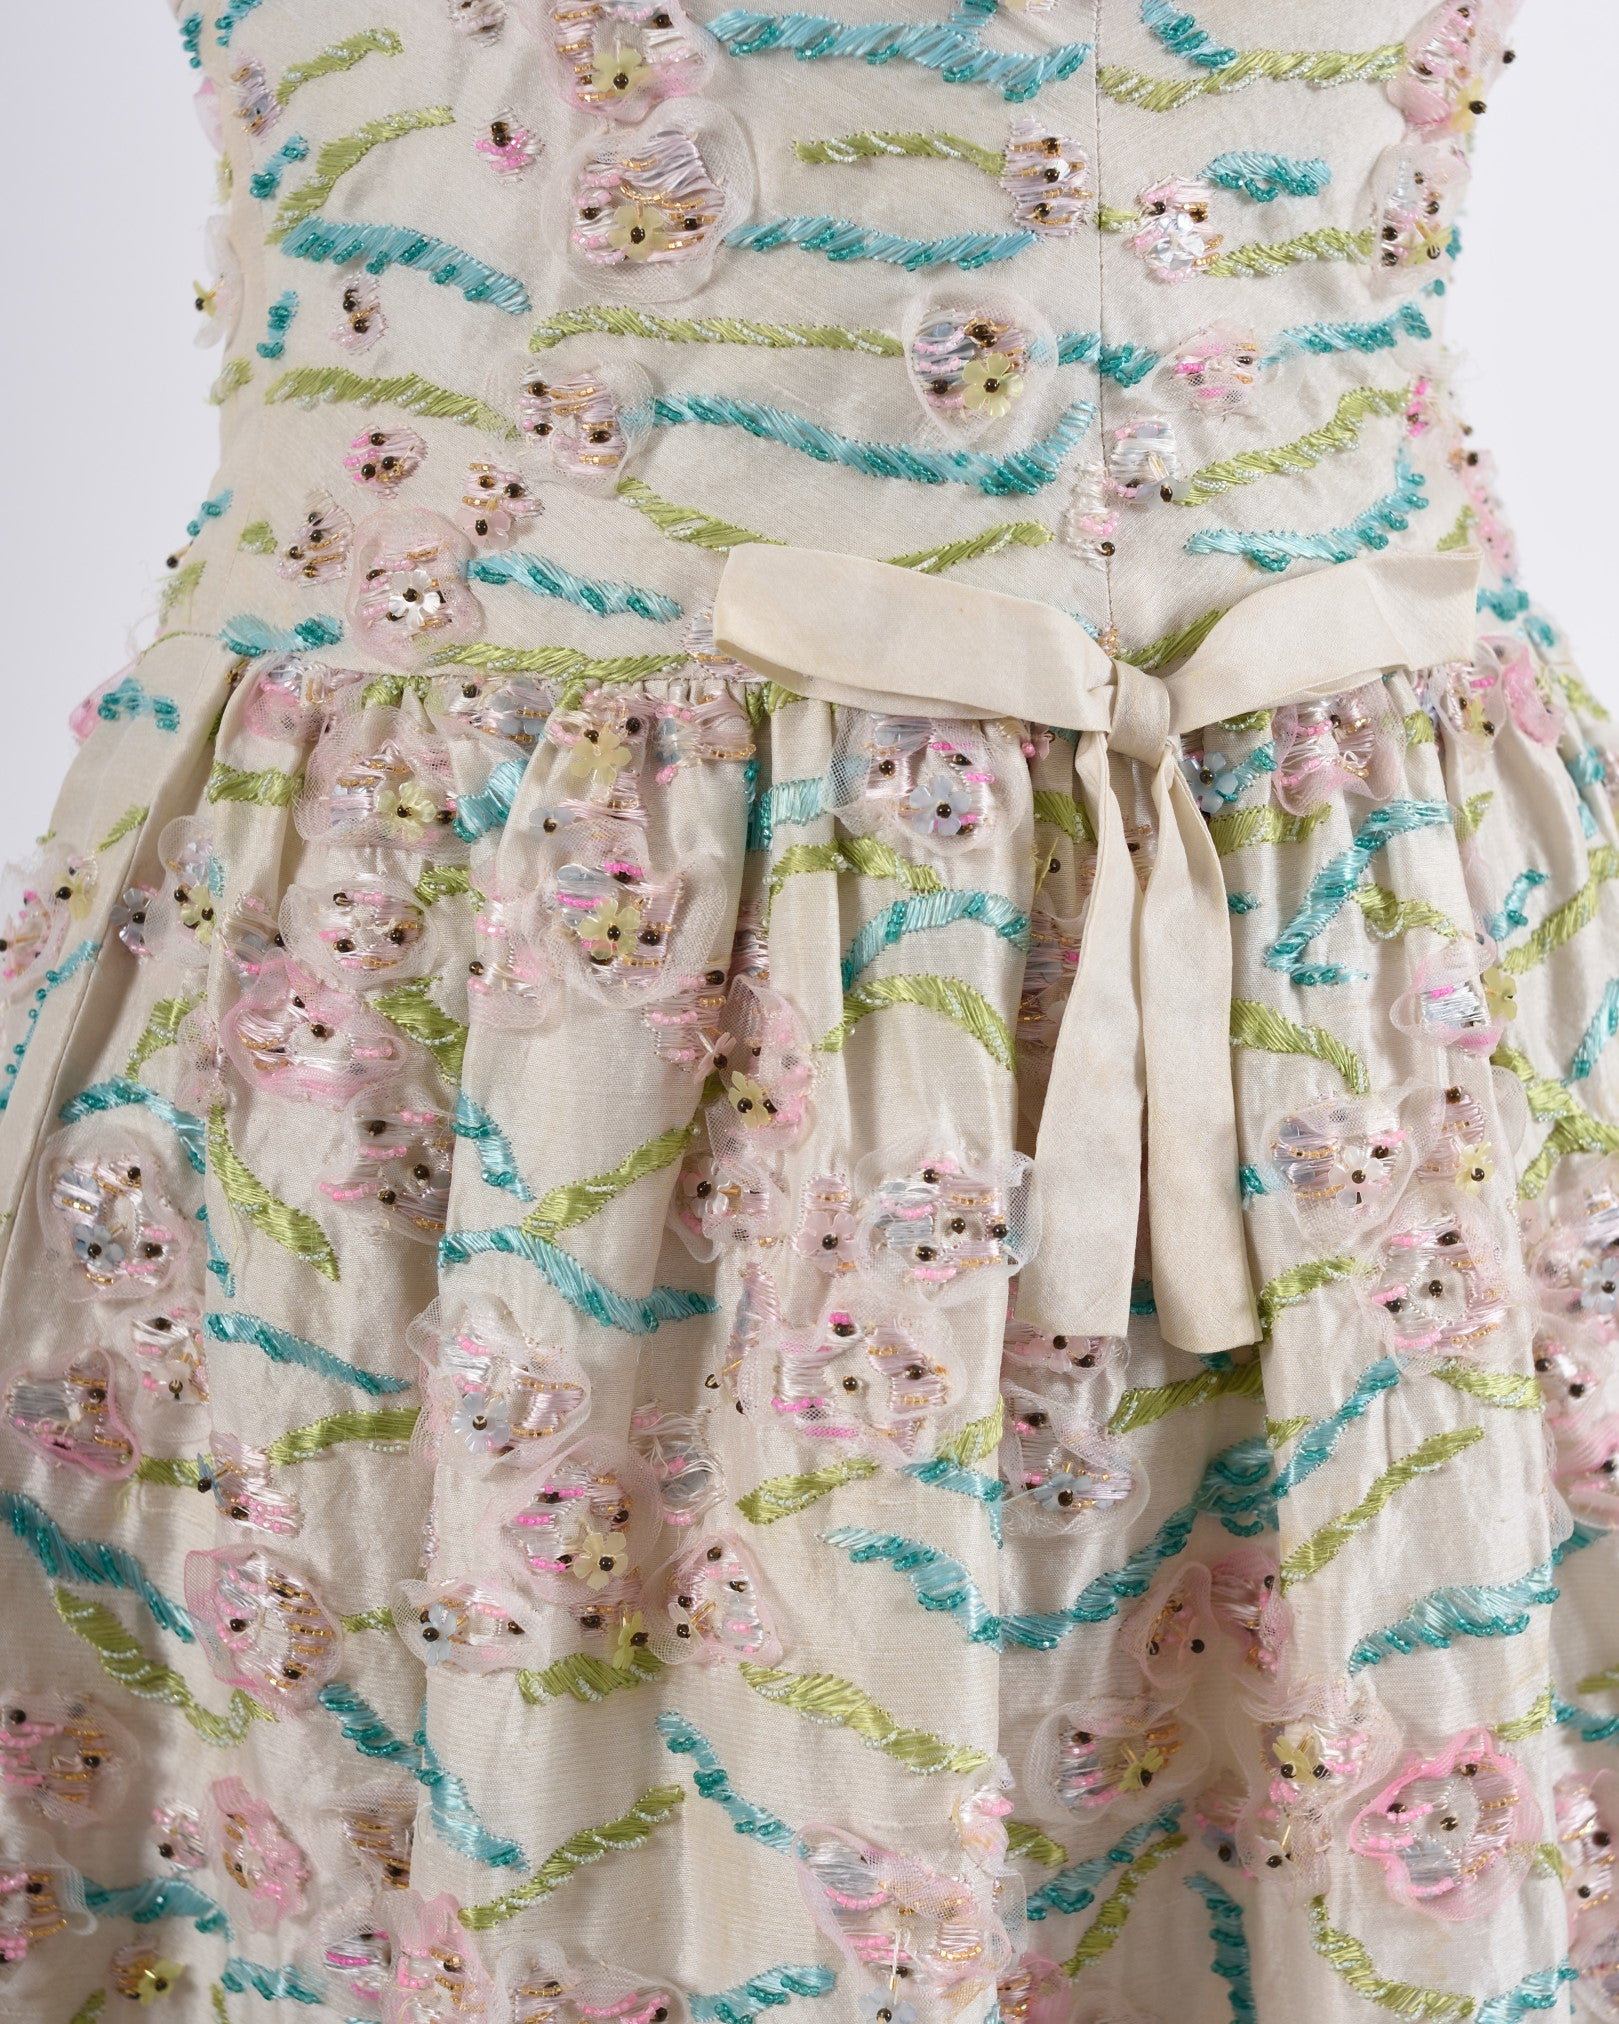 SARTORIA ZECCA 1950s Ivory Floral Embroidered Cocktail Dress